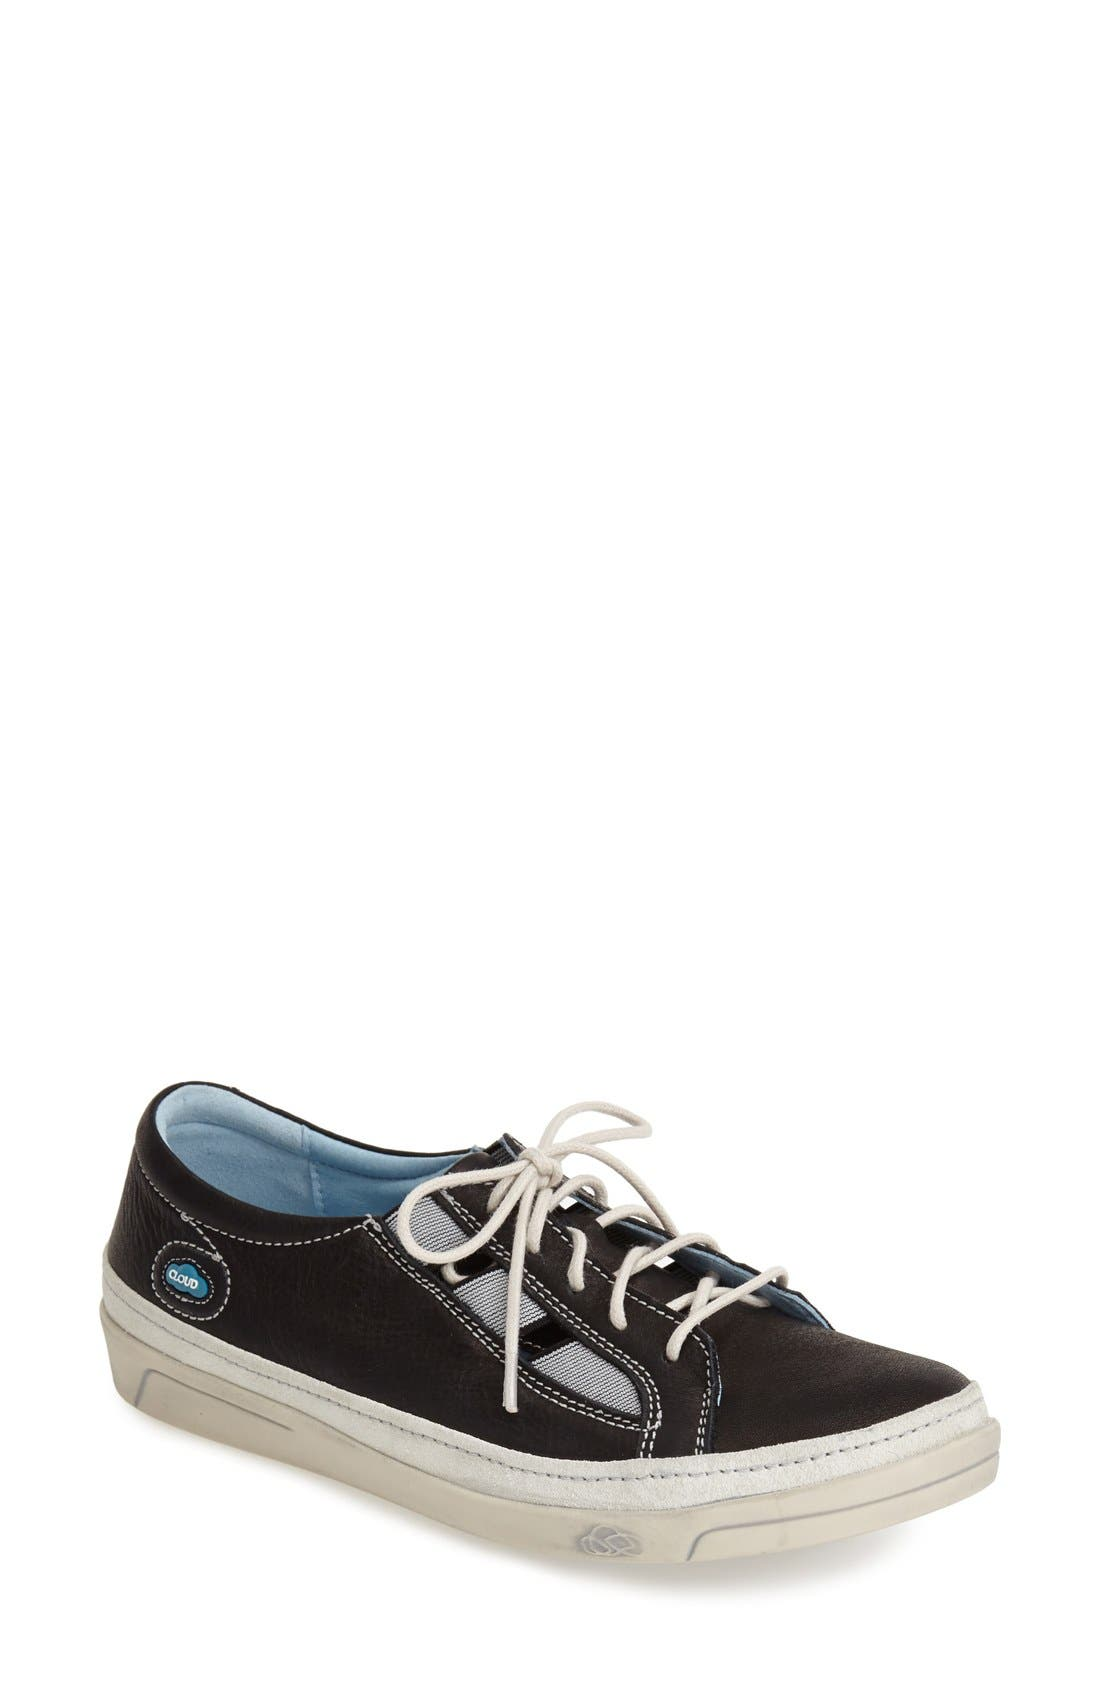 'Amazonas' Leather Sneaker,                             Main thumbnail 1, color,                             BLACK